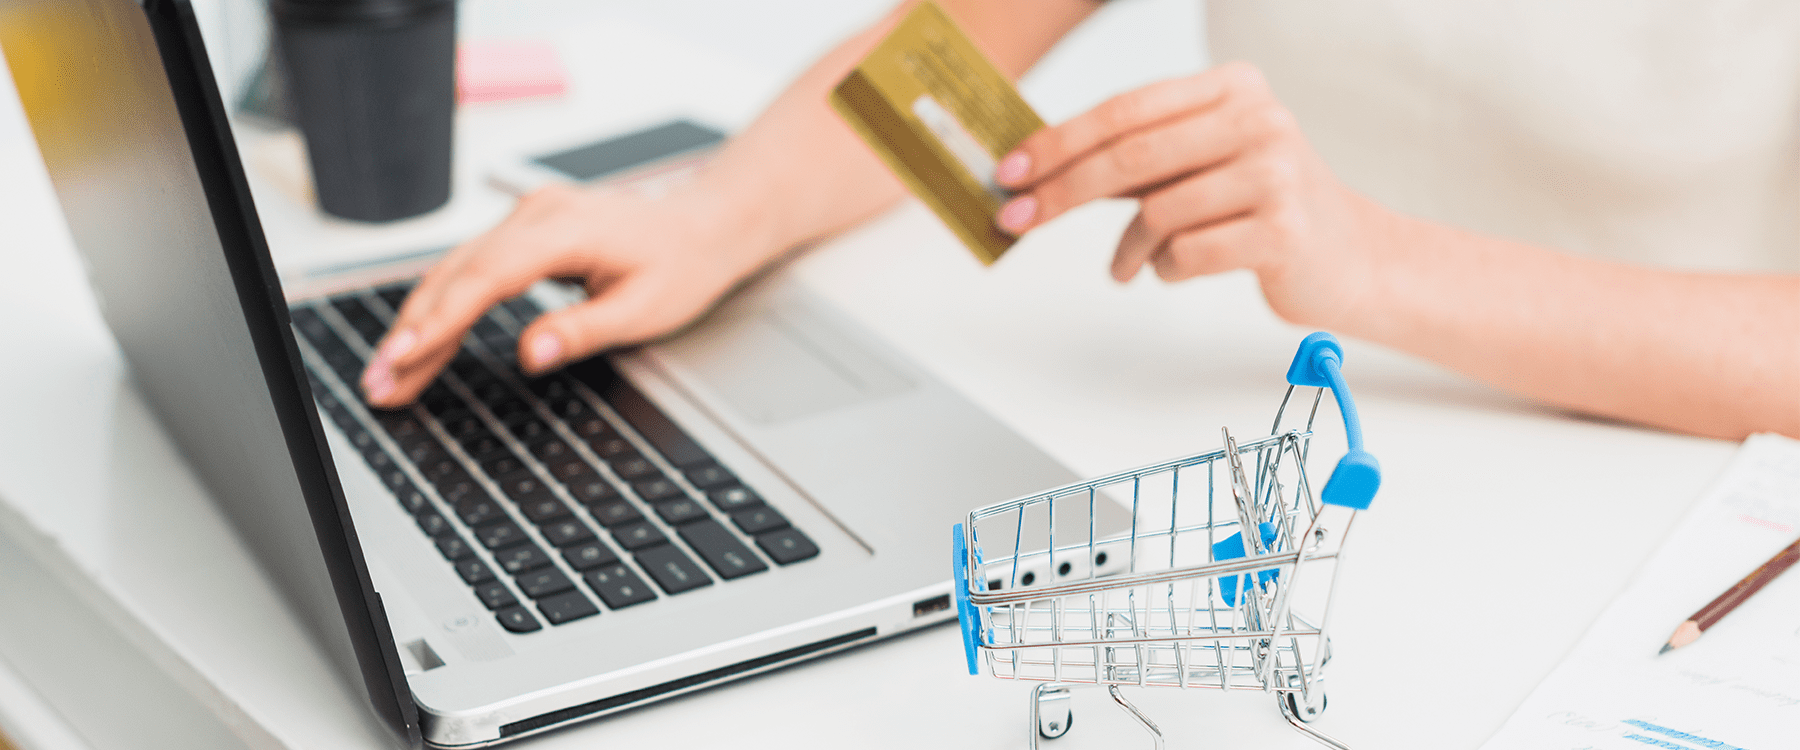 5 Simple Ways to Drive Traffic to Your E-Commerce Site Image